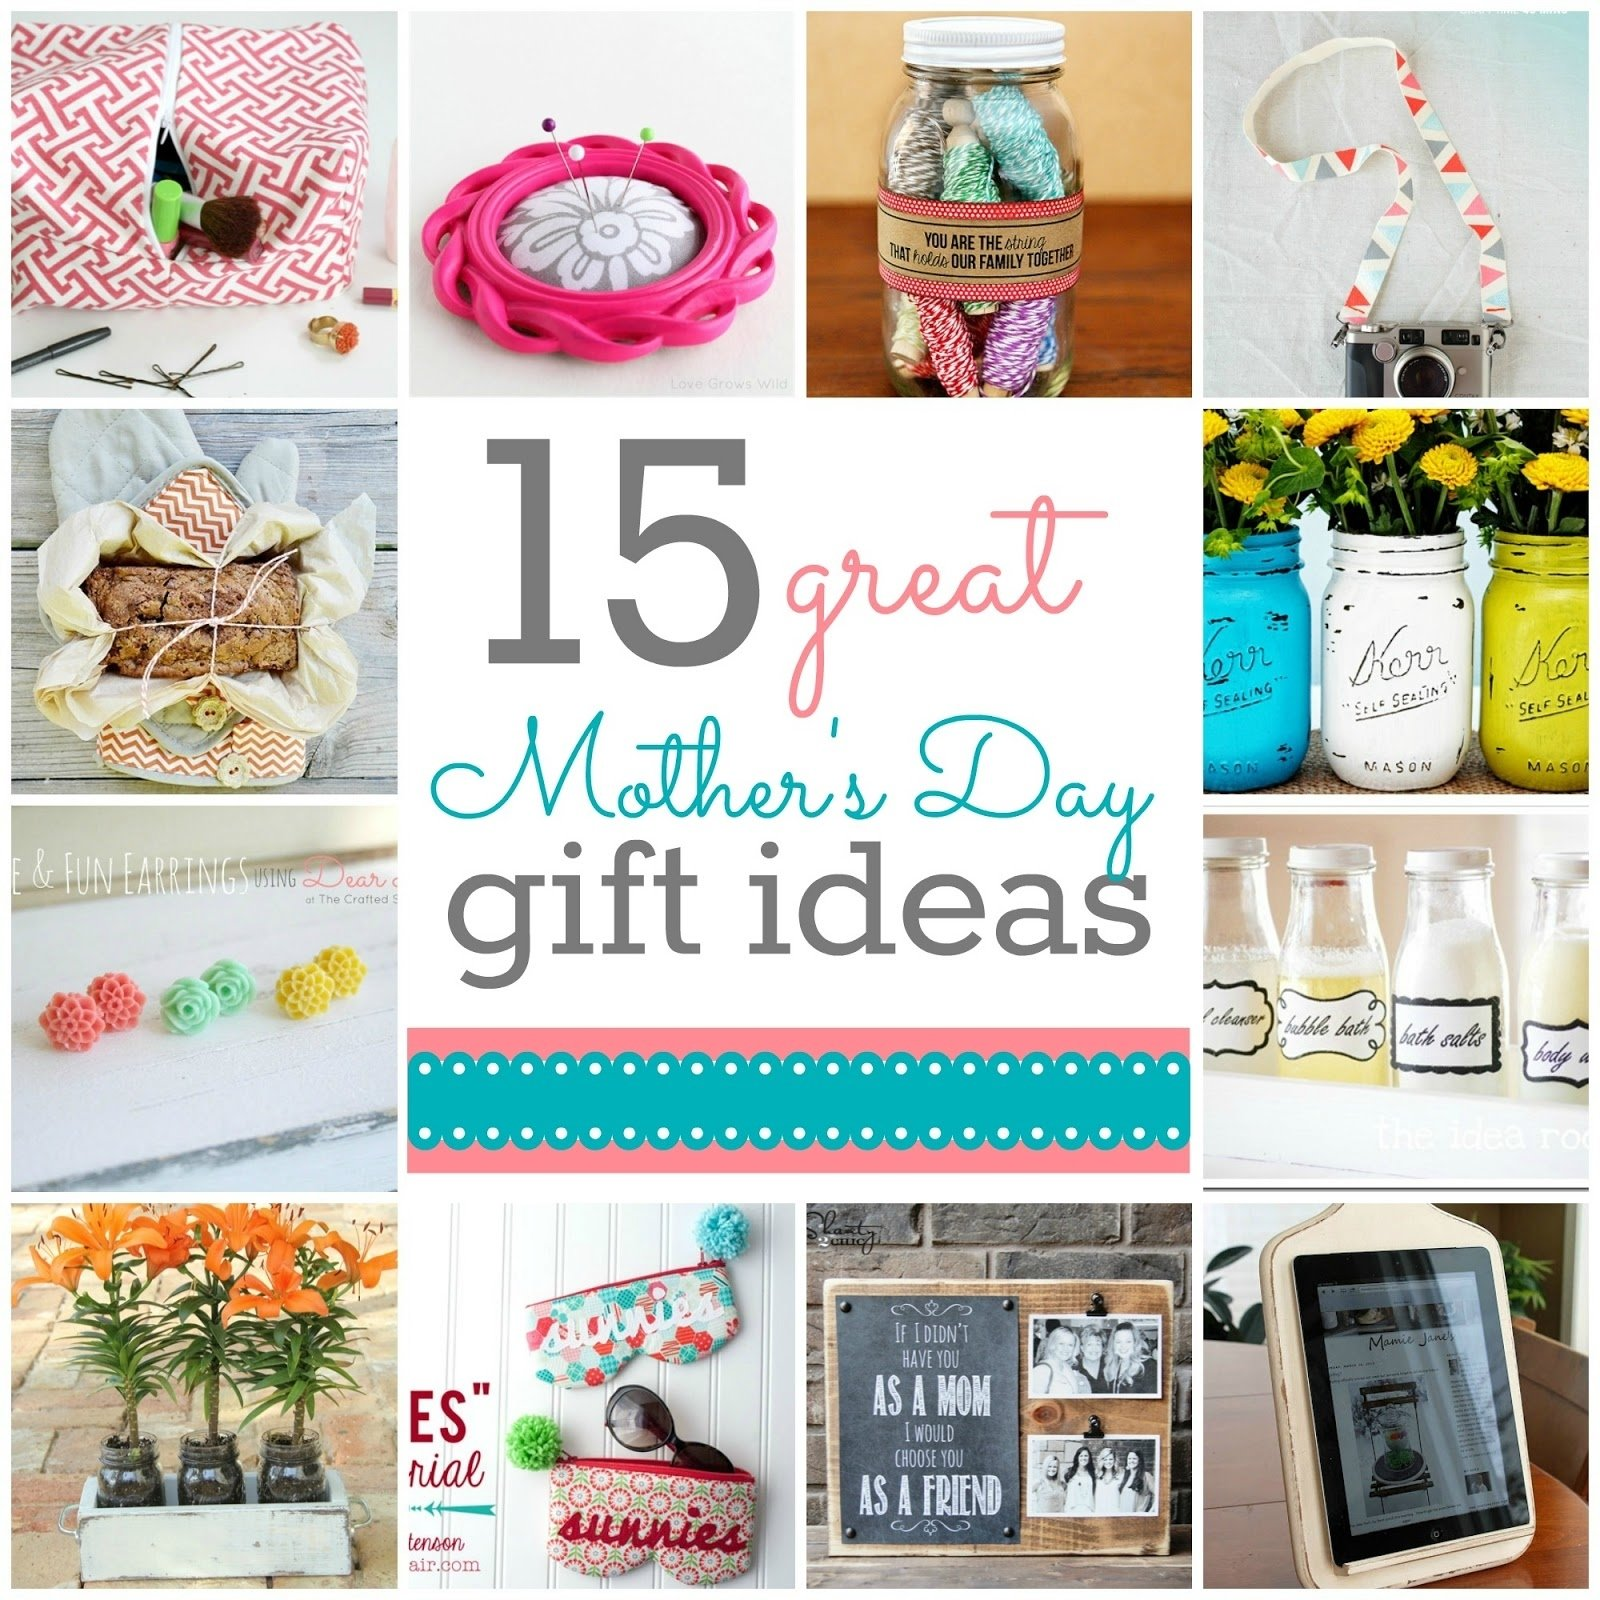 10 Pretty Birthday Present Ideas For Mom mothers day gift ideas an epic giveaway the crafted sparrow 5 2020